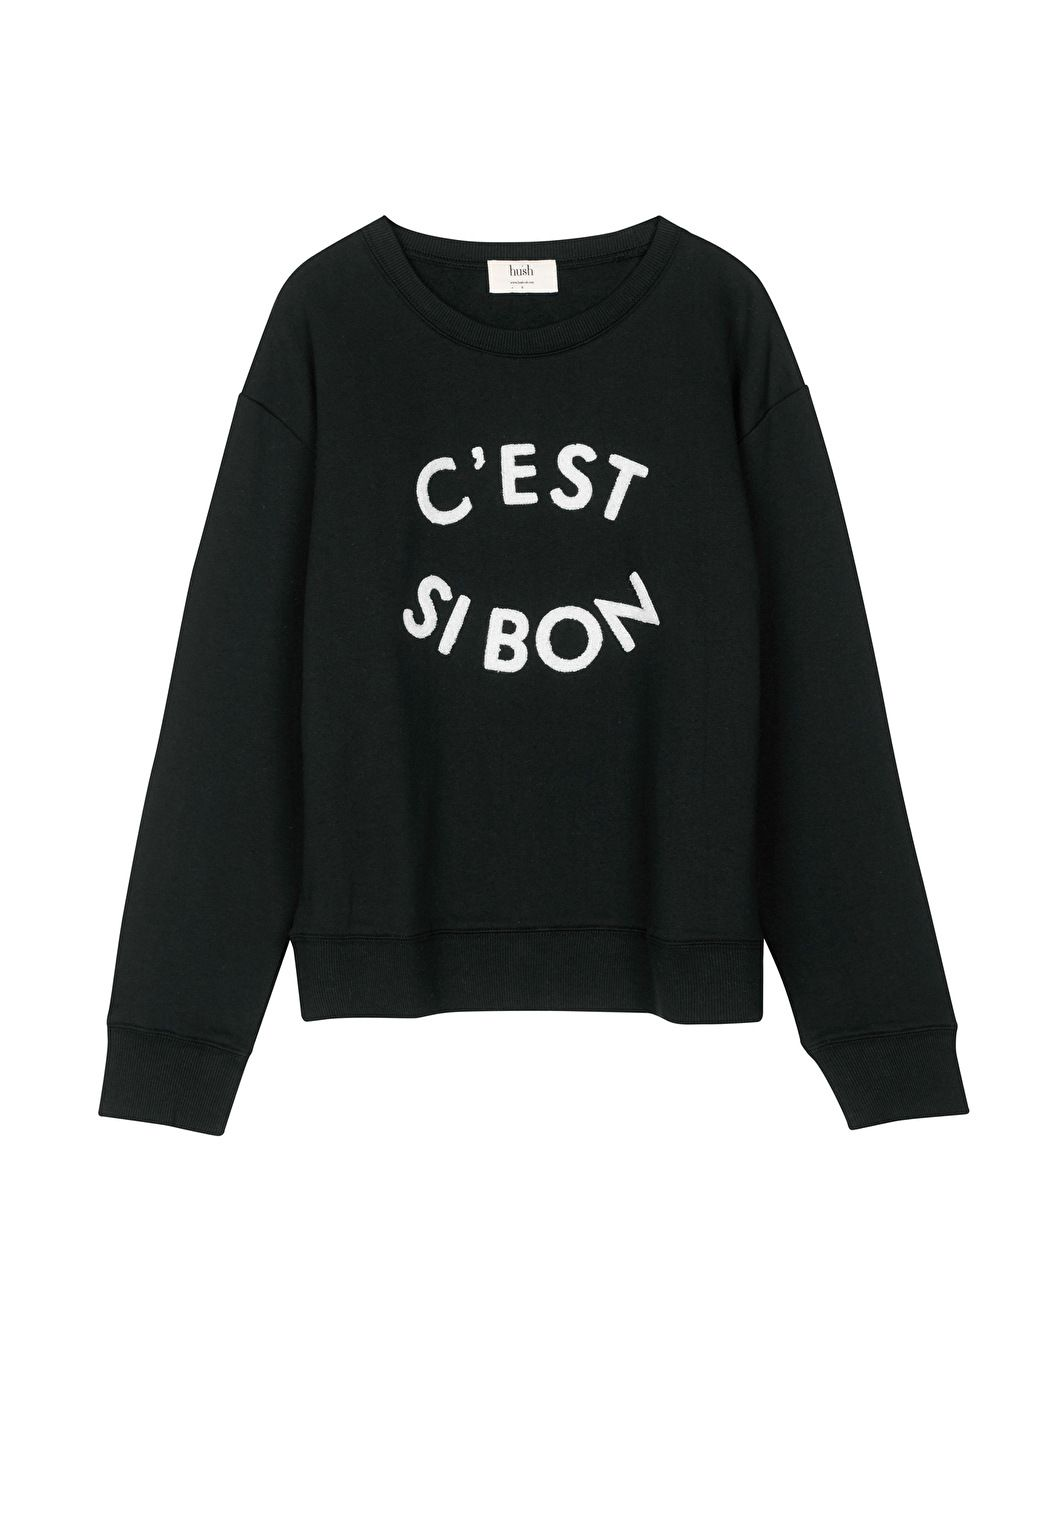 52b99458f900 C'est Si Bon Sweat Top | wearing items | Hush hush, Animal print ...